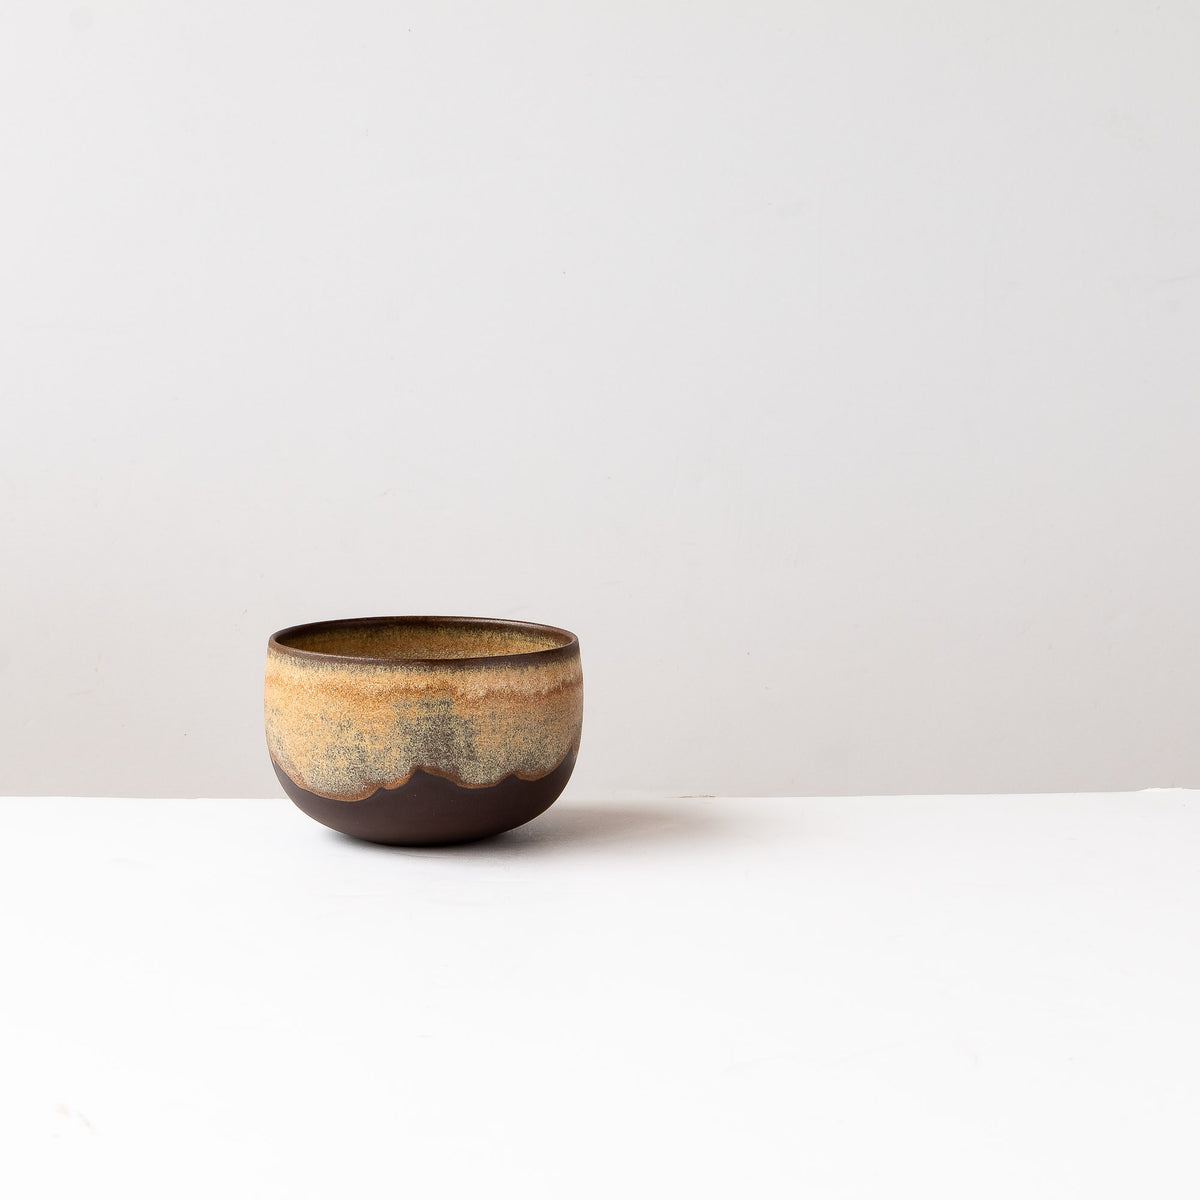 Handthrown Coffee Bowl in Black Stoneware - Sold by Chic & Basta